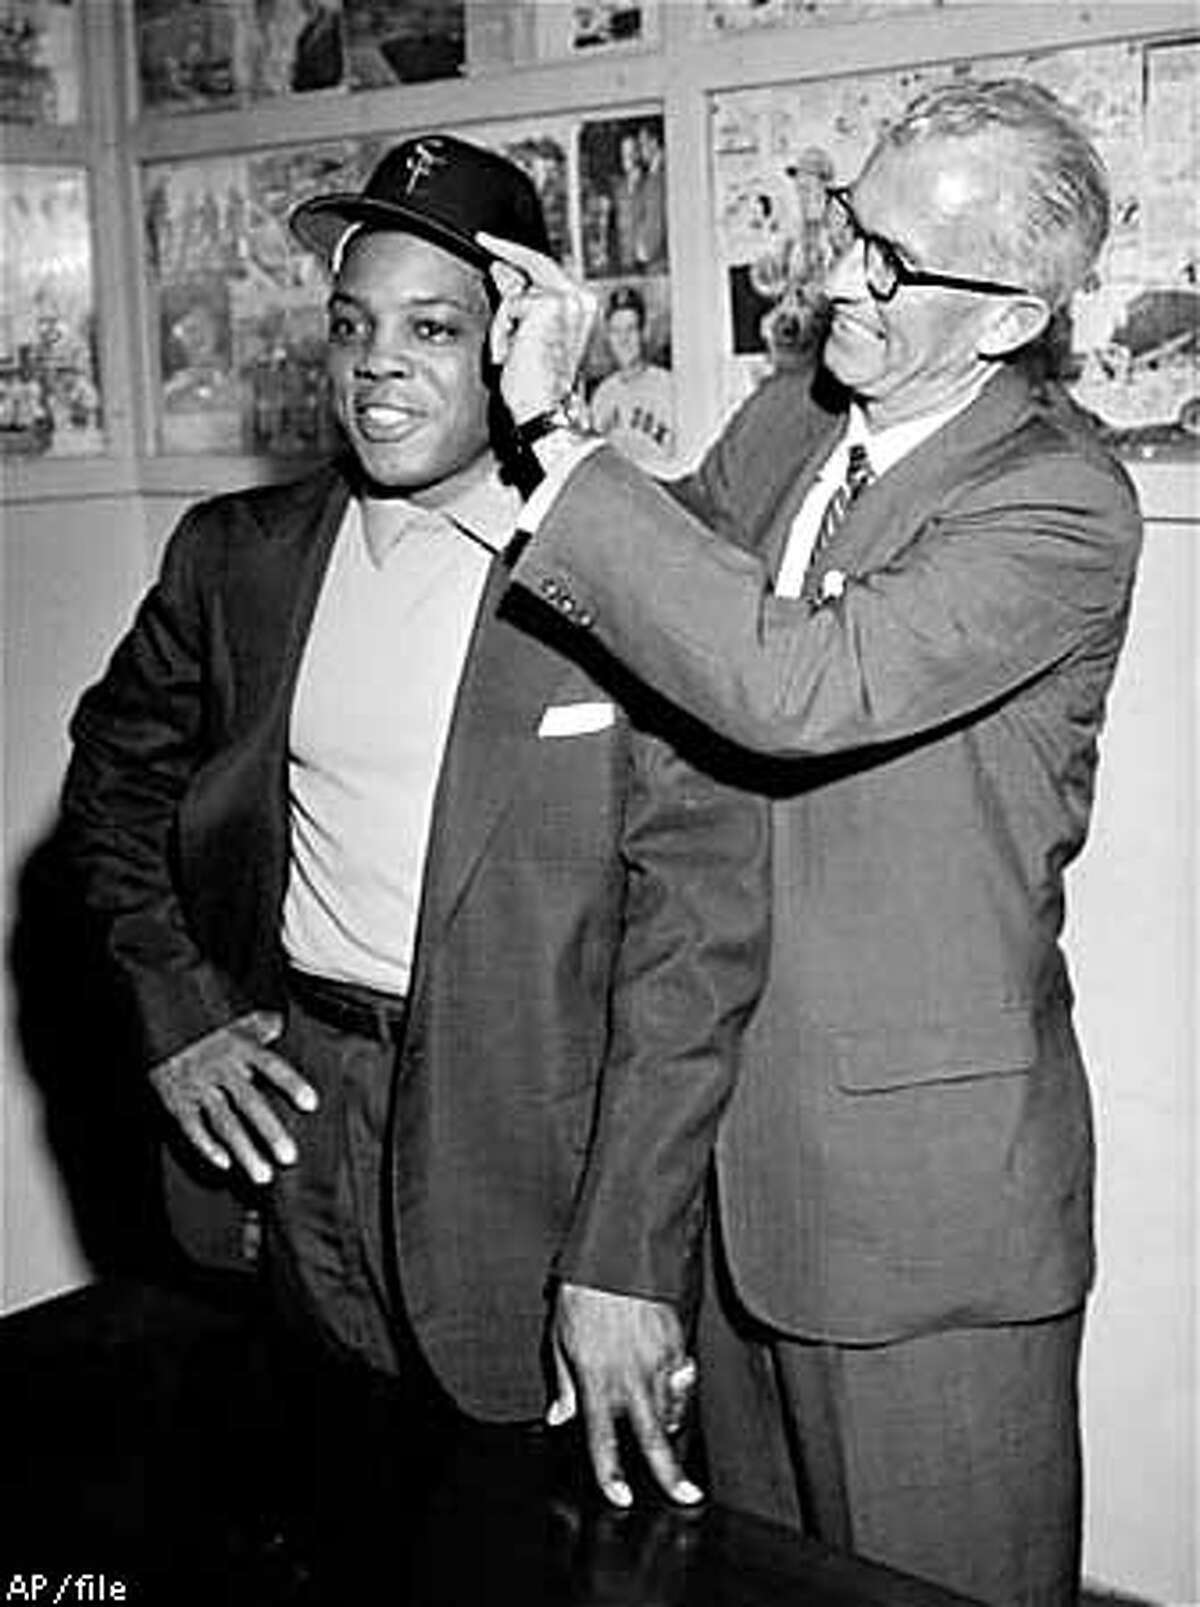 """Manager Bill Rigney, right, places a San Francisco Giants cap on Willie Mays during a press conference at Seals Stadium, October 31, 1959. Willie's first exclamation when he viewed the field was a smiling, """"This park's too big, man,"""" and added, """"It will take a good belt for a home run."""" (AP Photo/stf)"""